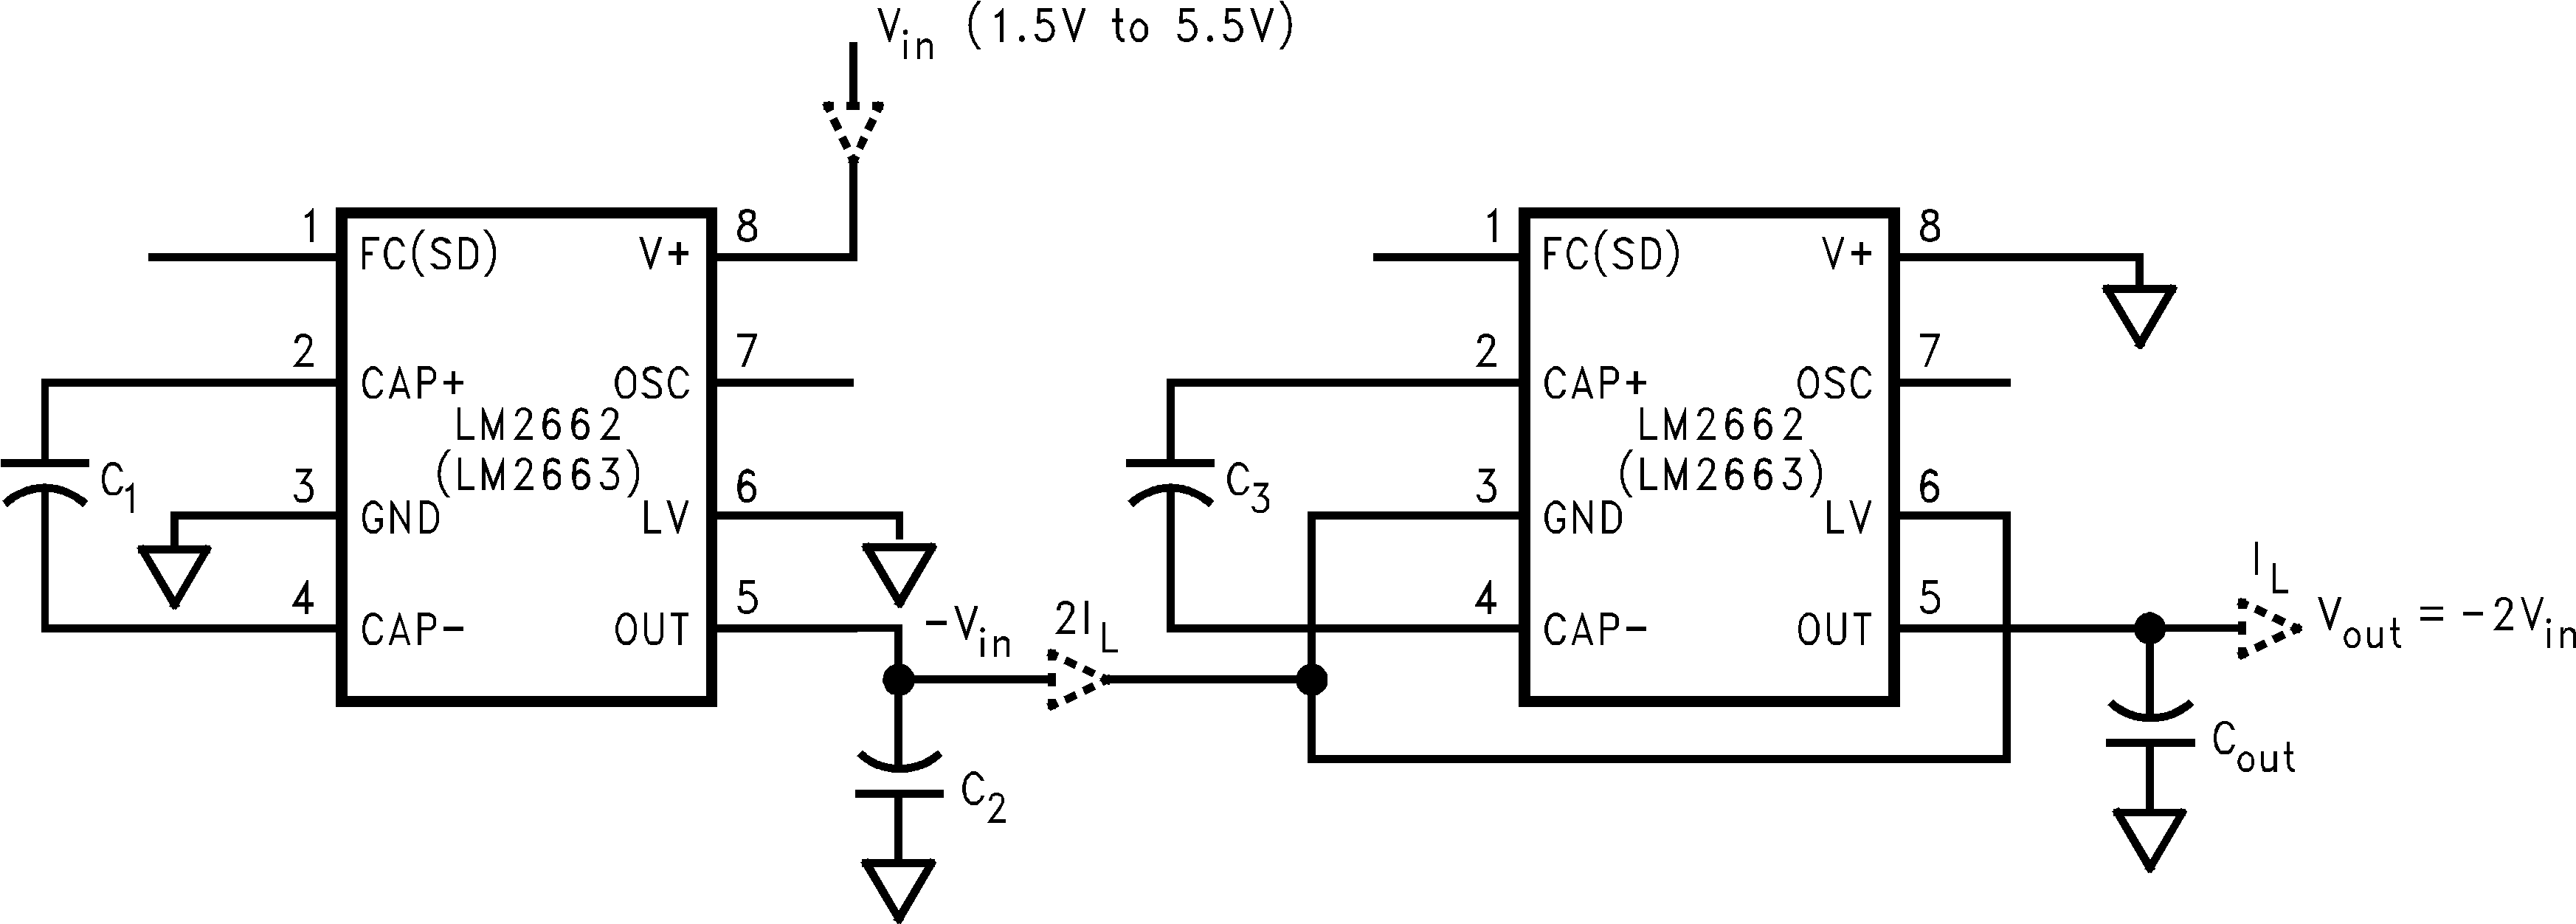 Lm2663 If The Voltage Goes Into Pin Three Then Circuit Becomes A Non Increasing Output By Cascading Devices